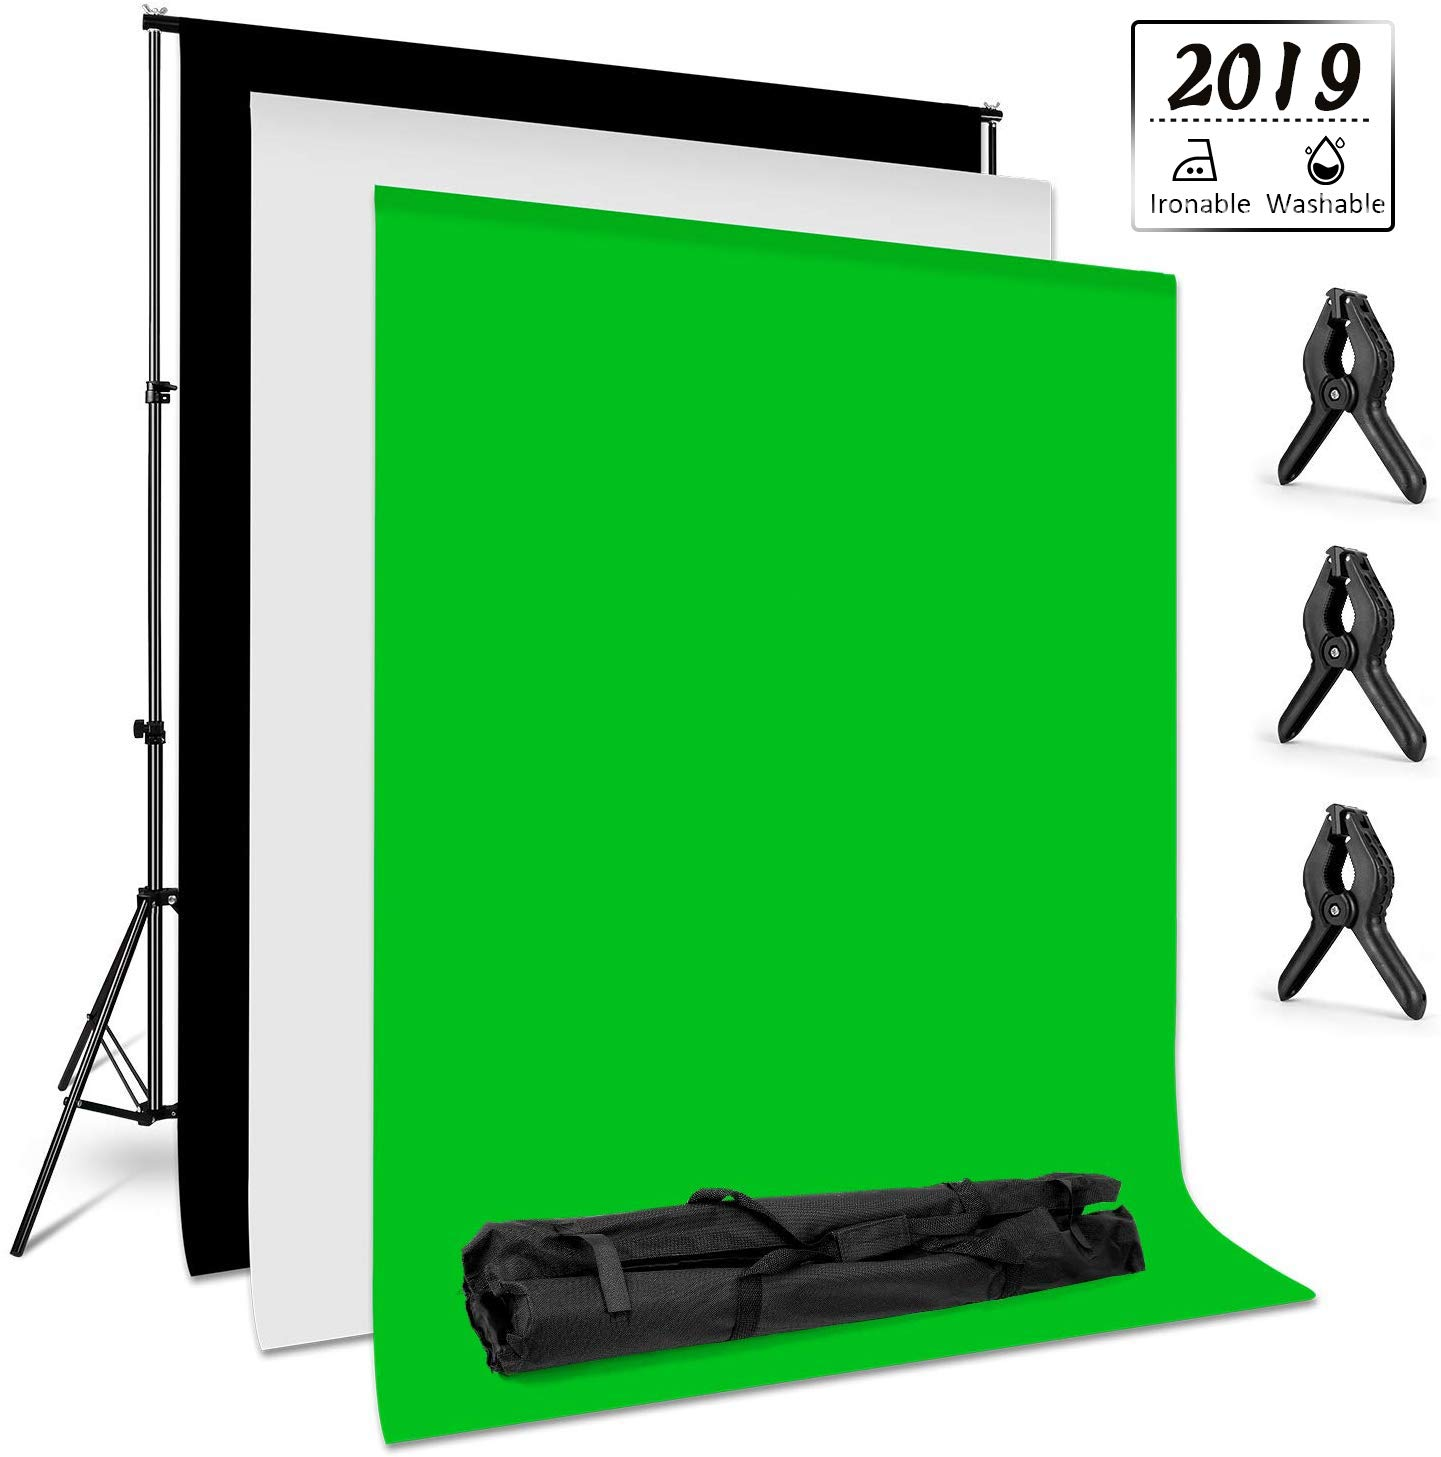 Amzdeal Photography Backdrop Stand 6.6ft X 10ft Photo Backdrop Stand Kit Washable White Black Green Background Stand Support System with 3 Clamps and a Carrying Bag by amzdeal